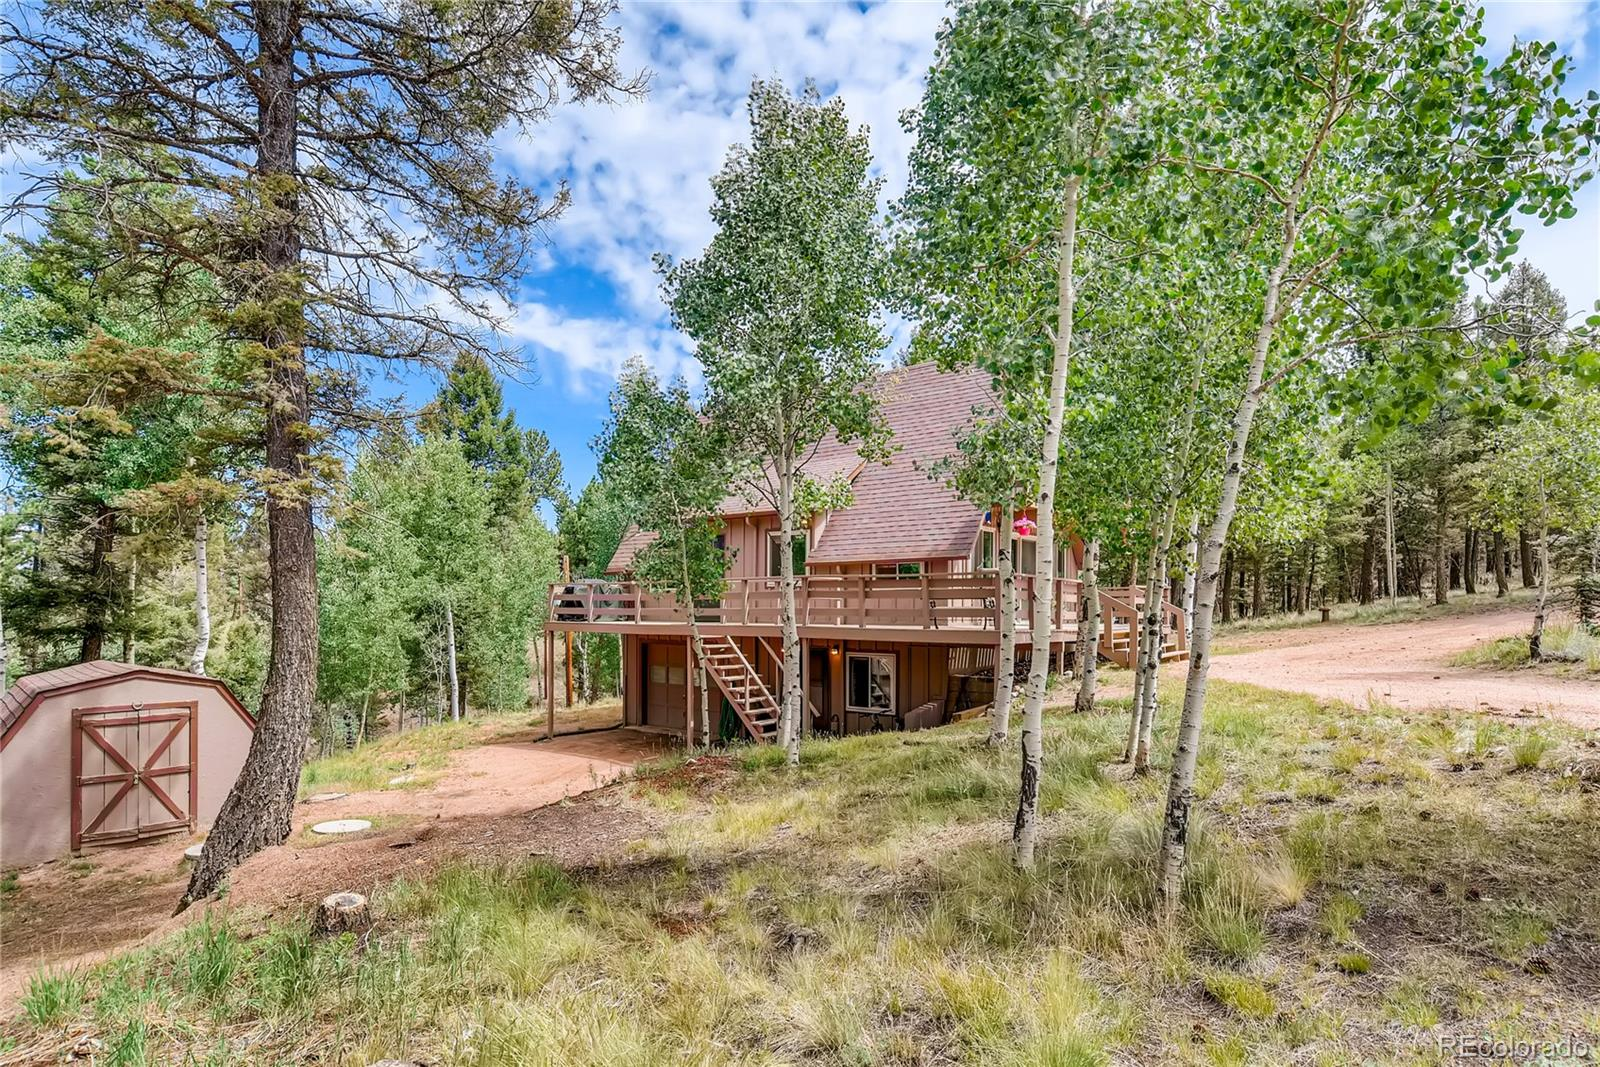 Enjoy this peaceful and private retreat on 1-1/2 treed acres just south of Florissant. This updated country home features a large wrap-around deck, gorgeous aspens and pines, and an easy-access circular driveway (bring the RV and toy trailer). The main level has wood floors, tongue & groove pine ceiling in the living room, a remodeled 1/2 bath, cozy wood stove, large country kitchen and dining area. The upper level has two bedrooms and a full bath. The master bedroom has a private deck for morning coffee or and evening book. Ceiling fans in the living room and upper bedrooms keep temperatures comfortable. The 14x 12 lower level bedroom area has a large closet, 1/2 bath and a private entry door, giving this flexibility for a walk-out family room or guest quarters. The laundry room with has space for a wine cellar, beer brewing or storage. There is an oversized attached one-car garage as well. Three energy efficient Rinnai natural gas heaters and wood stove keep you cozy. Supplemental electric baseboard heat provides total temperature customization. Newer vinyl window throughout. If you are ready for more room to stretch out and enjoy Colorado, this is it! This home is very conveniently located with quick access to Woodland Park and Colorado Springs. Roads are County maintained. Colorado Mt Estates boasts a private entrance to Dome Rock State Wildlife Area, minutes to Florissant Fossil Beds, 20 minutes to 11 Mile Canyon. Work from Home and Play from Home!